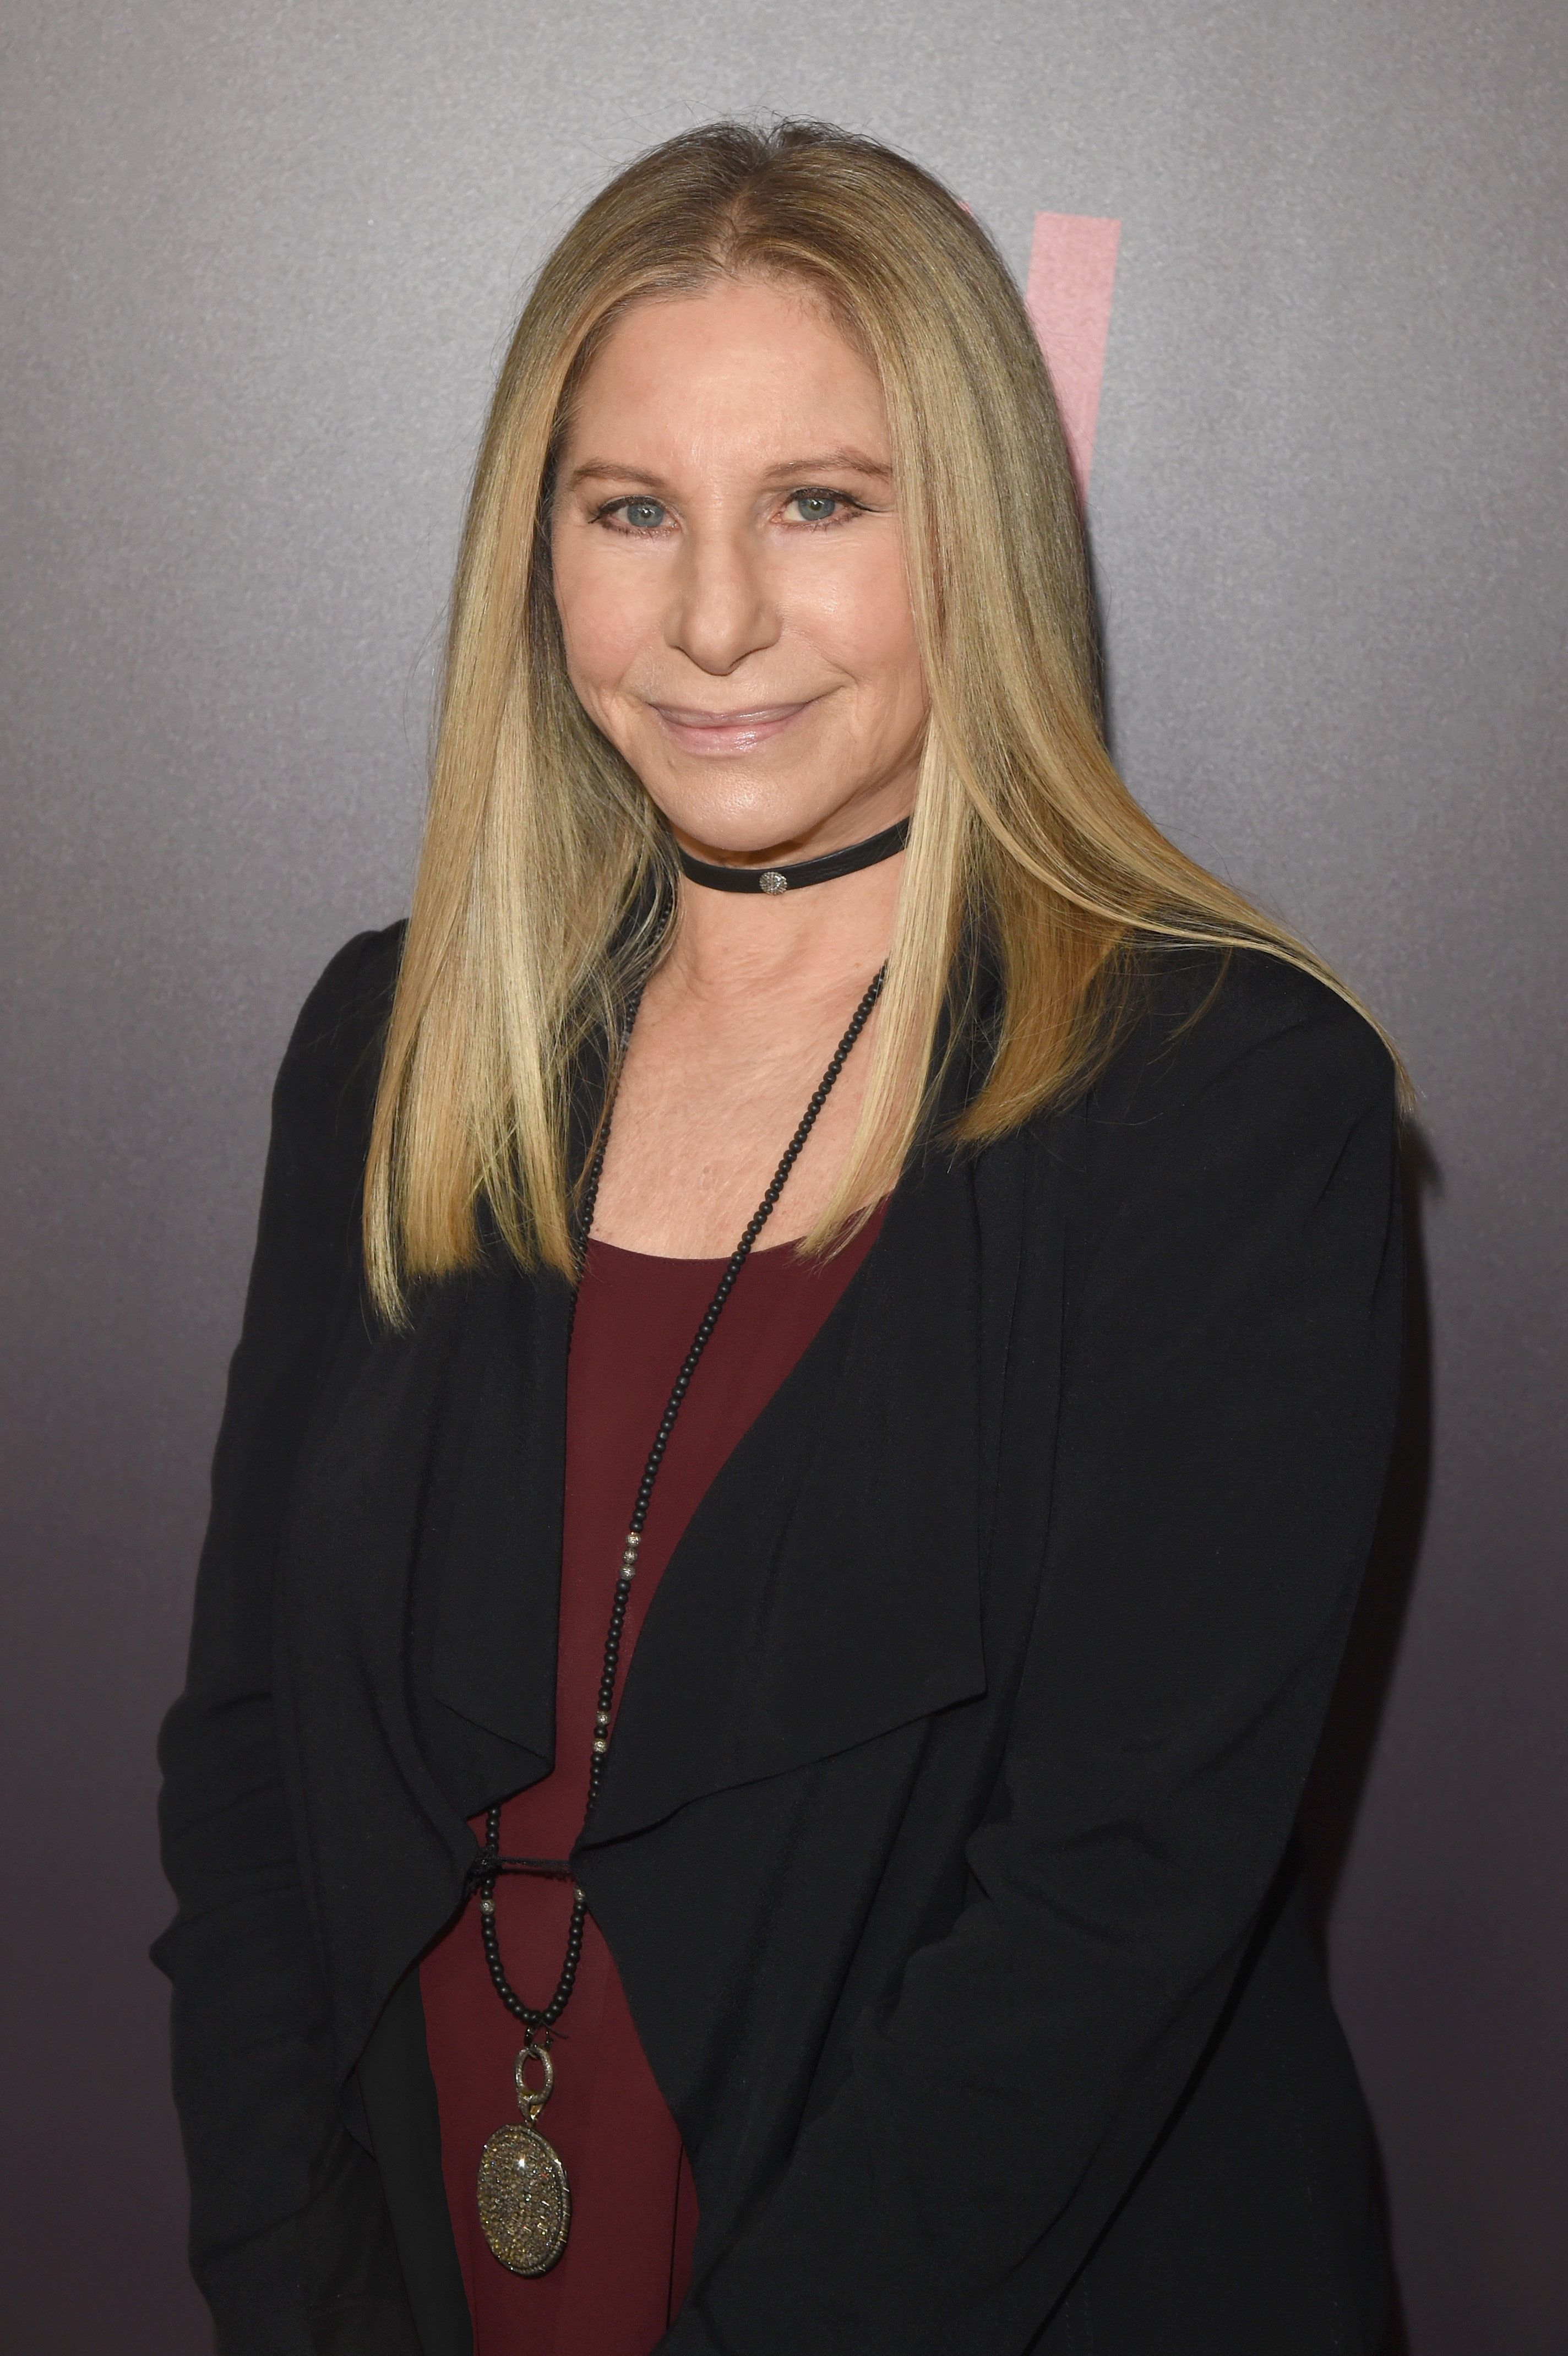 LOS ANGELES, CA - JUNE 10:  (EDITORS NOTE: This image has been retouched.) Barbra Streisand attends Barbra Streisand And Jamie Foxx In Conversation At Netflix's FYSEE at Raleigh Studios on June 10, 2018 in Los Angeles, California.  (Photo by Jason Merritt/Getty Images for Netflix)